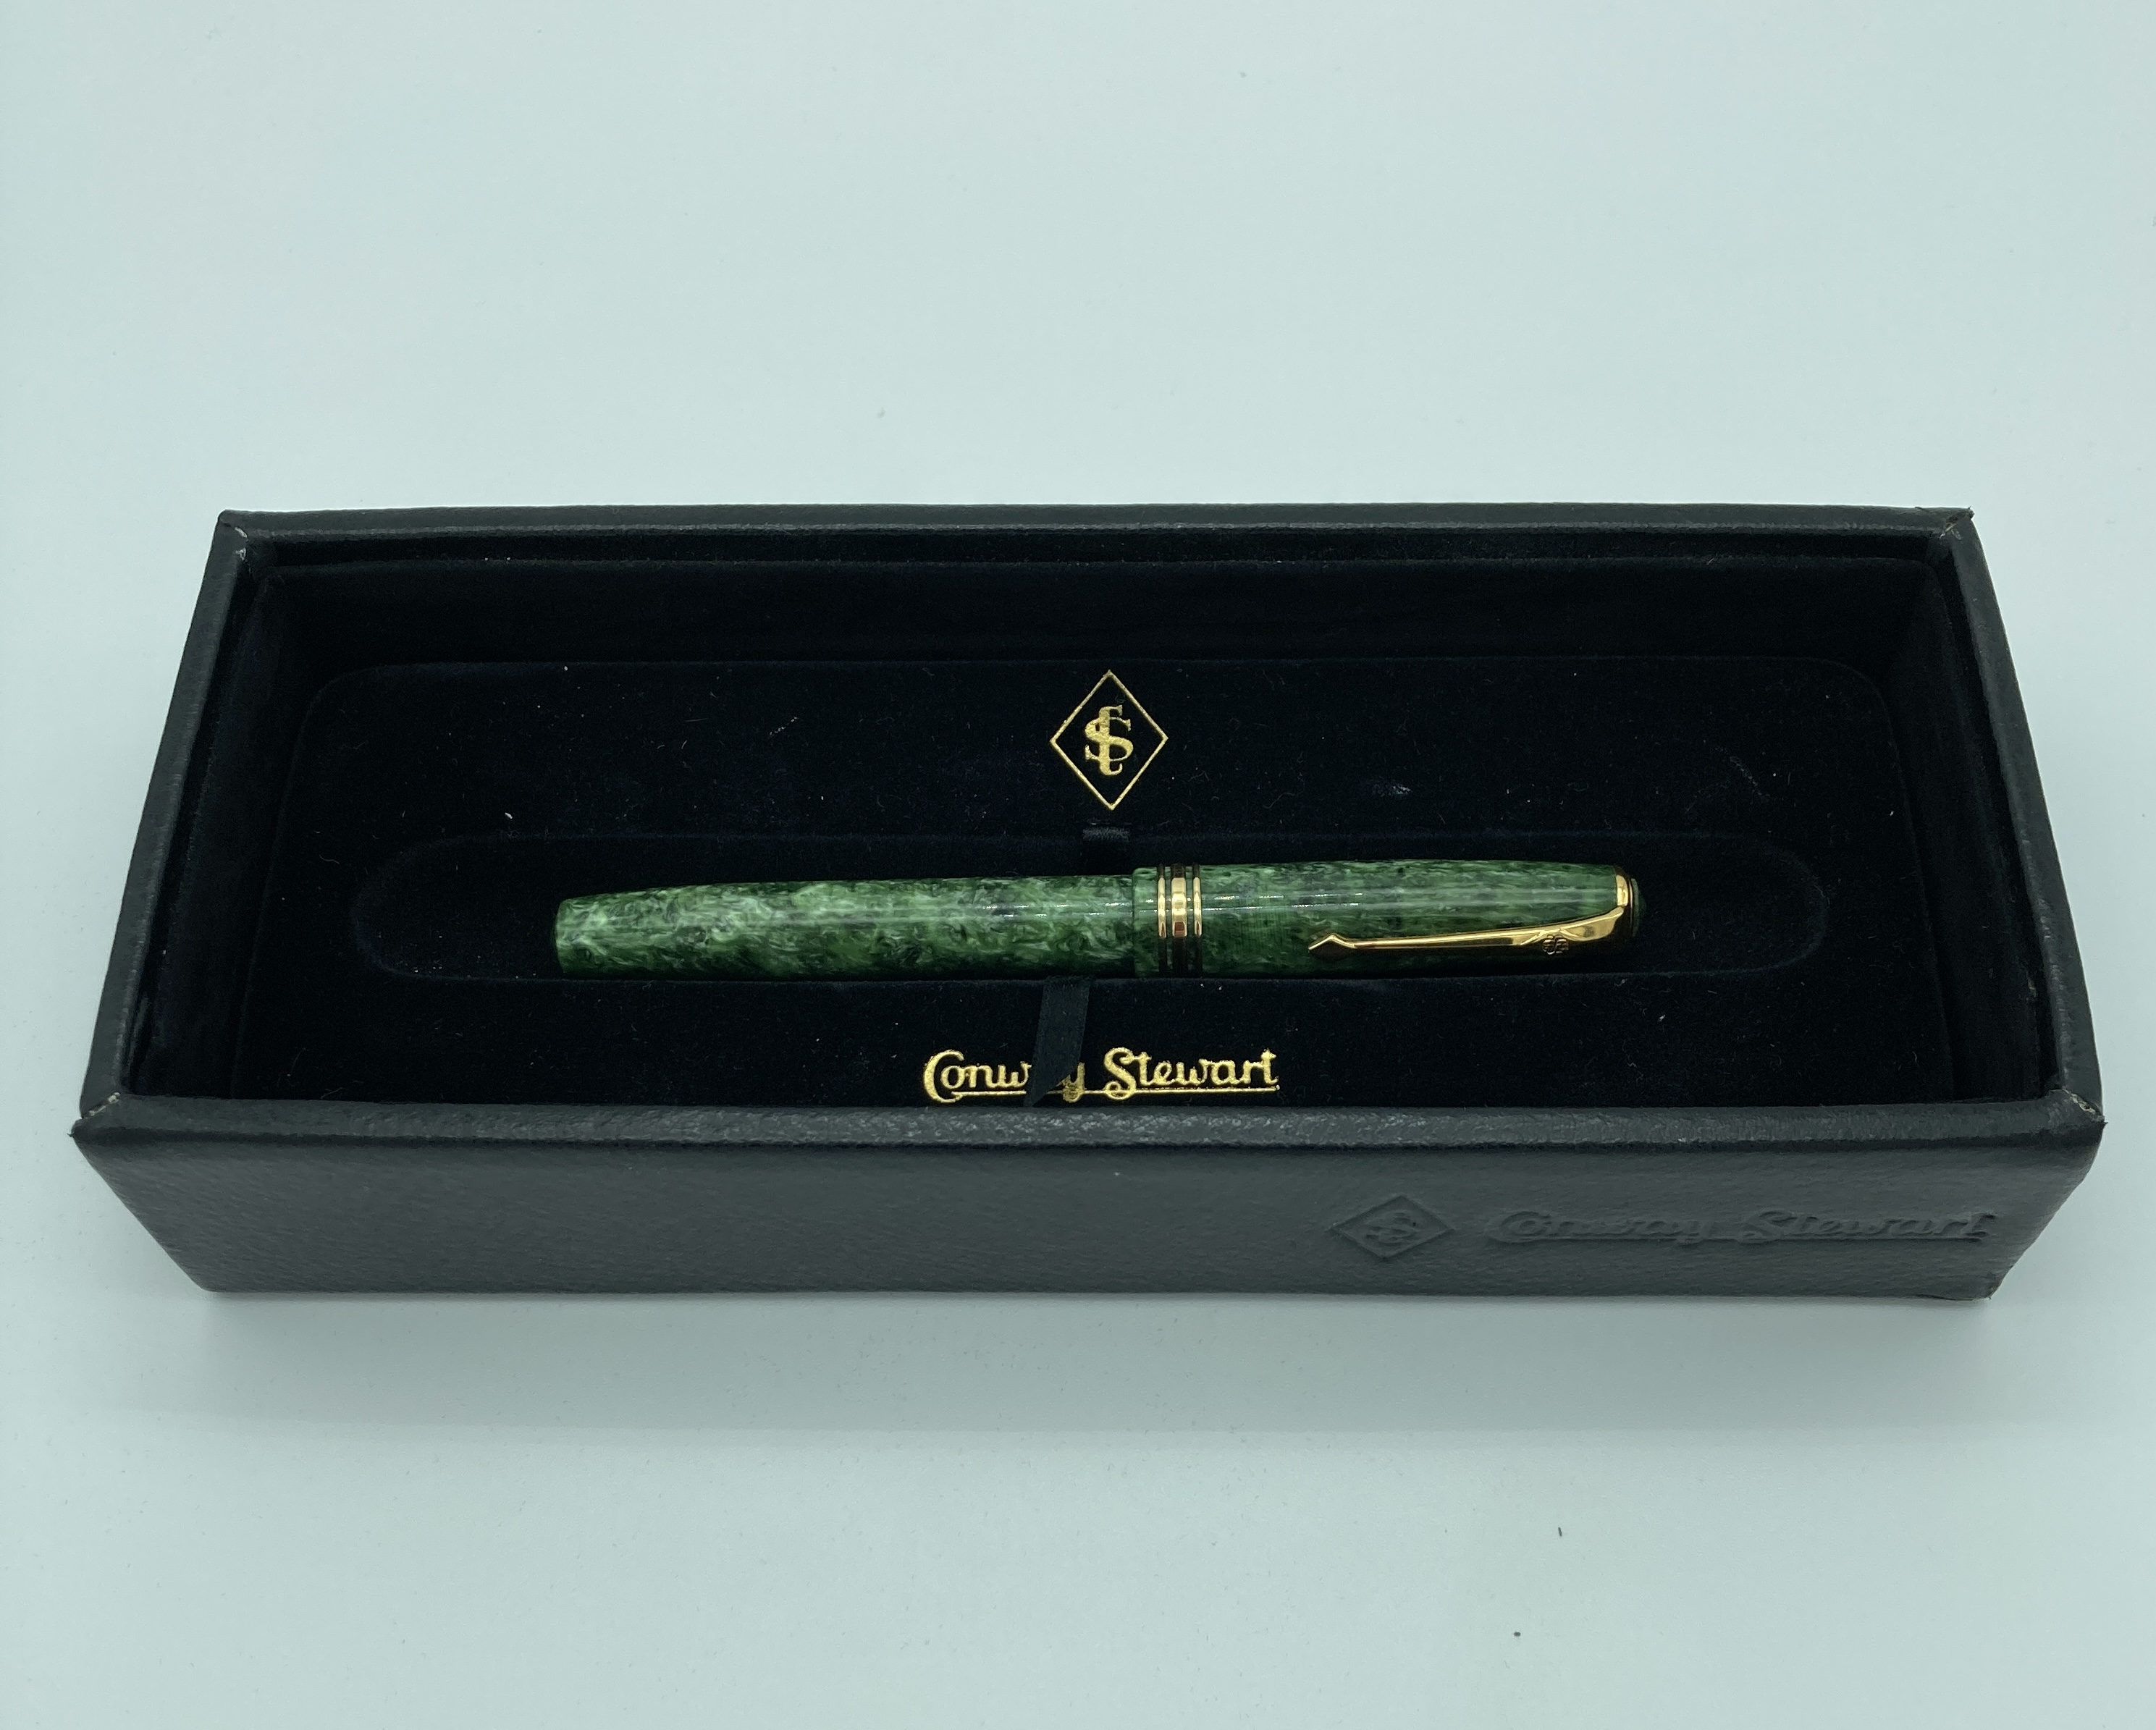 Pens and Pencils: : Conway Stewart: 58 Green